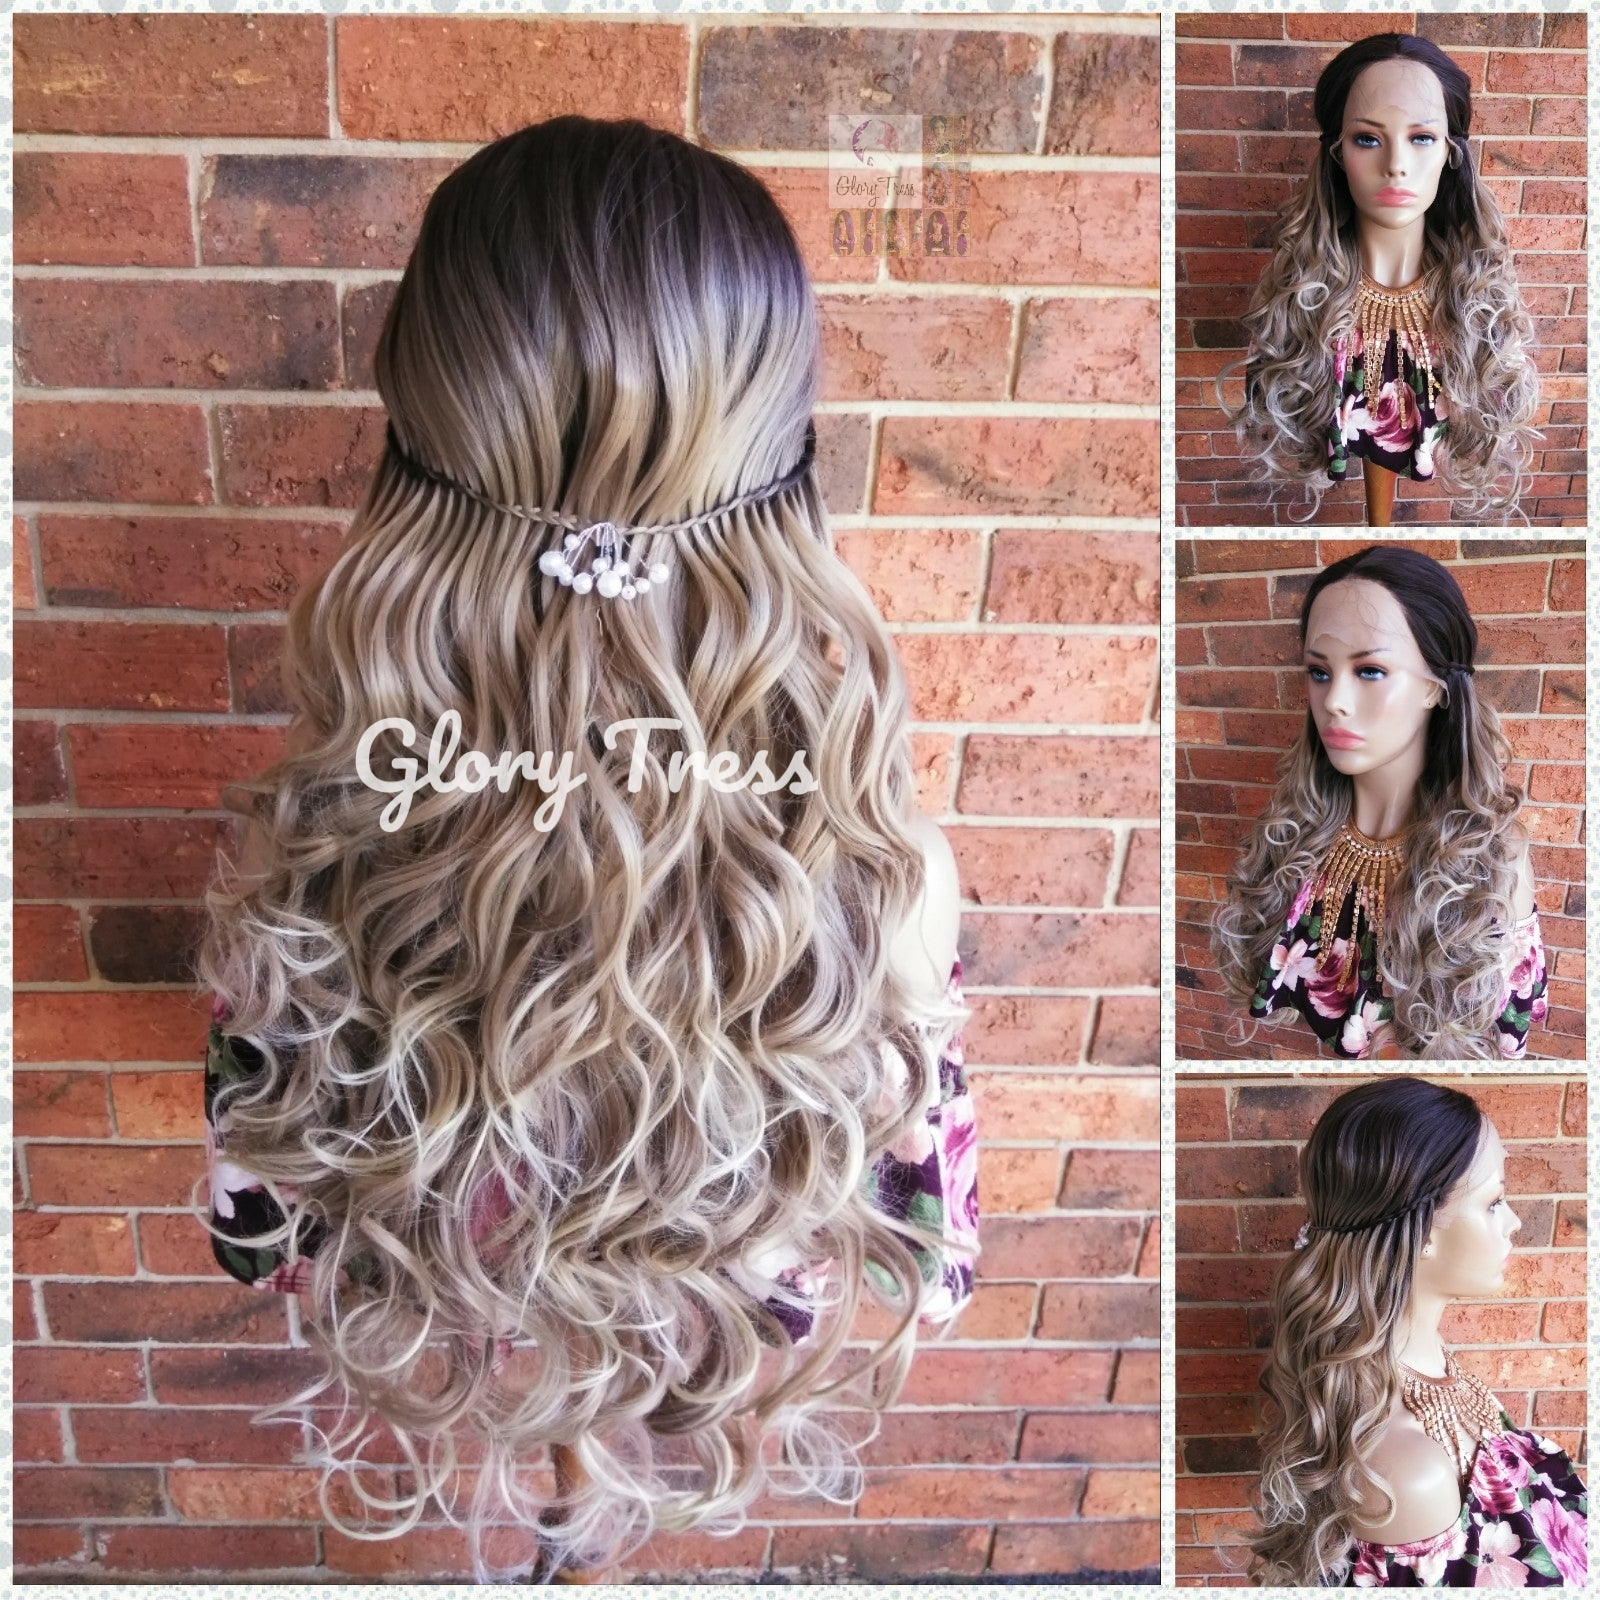 Curly Lace Front Wig, Wigs, Wedding / Prom Hairstyle, Braided Wig, Ombre Blonde Wig, Free Parting, Ash Blonde Wig, Dirty Blonde // ELEGANCE